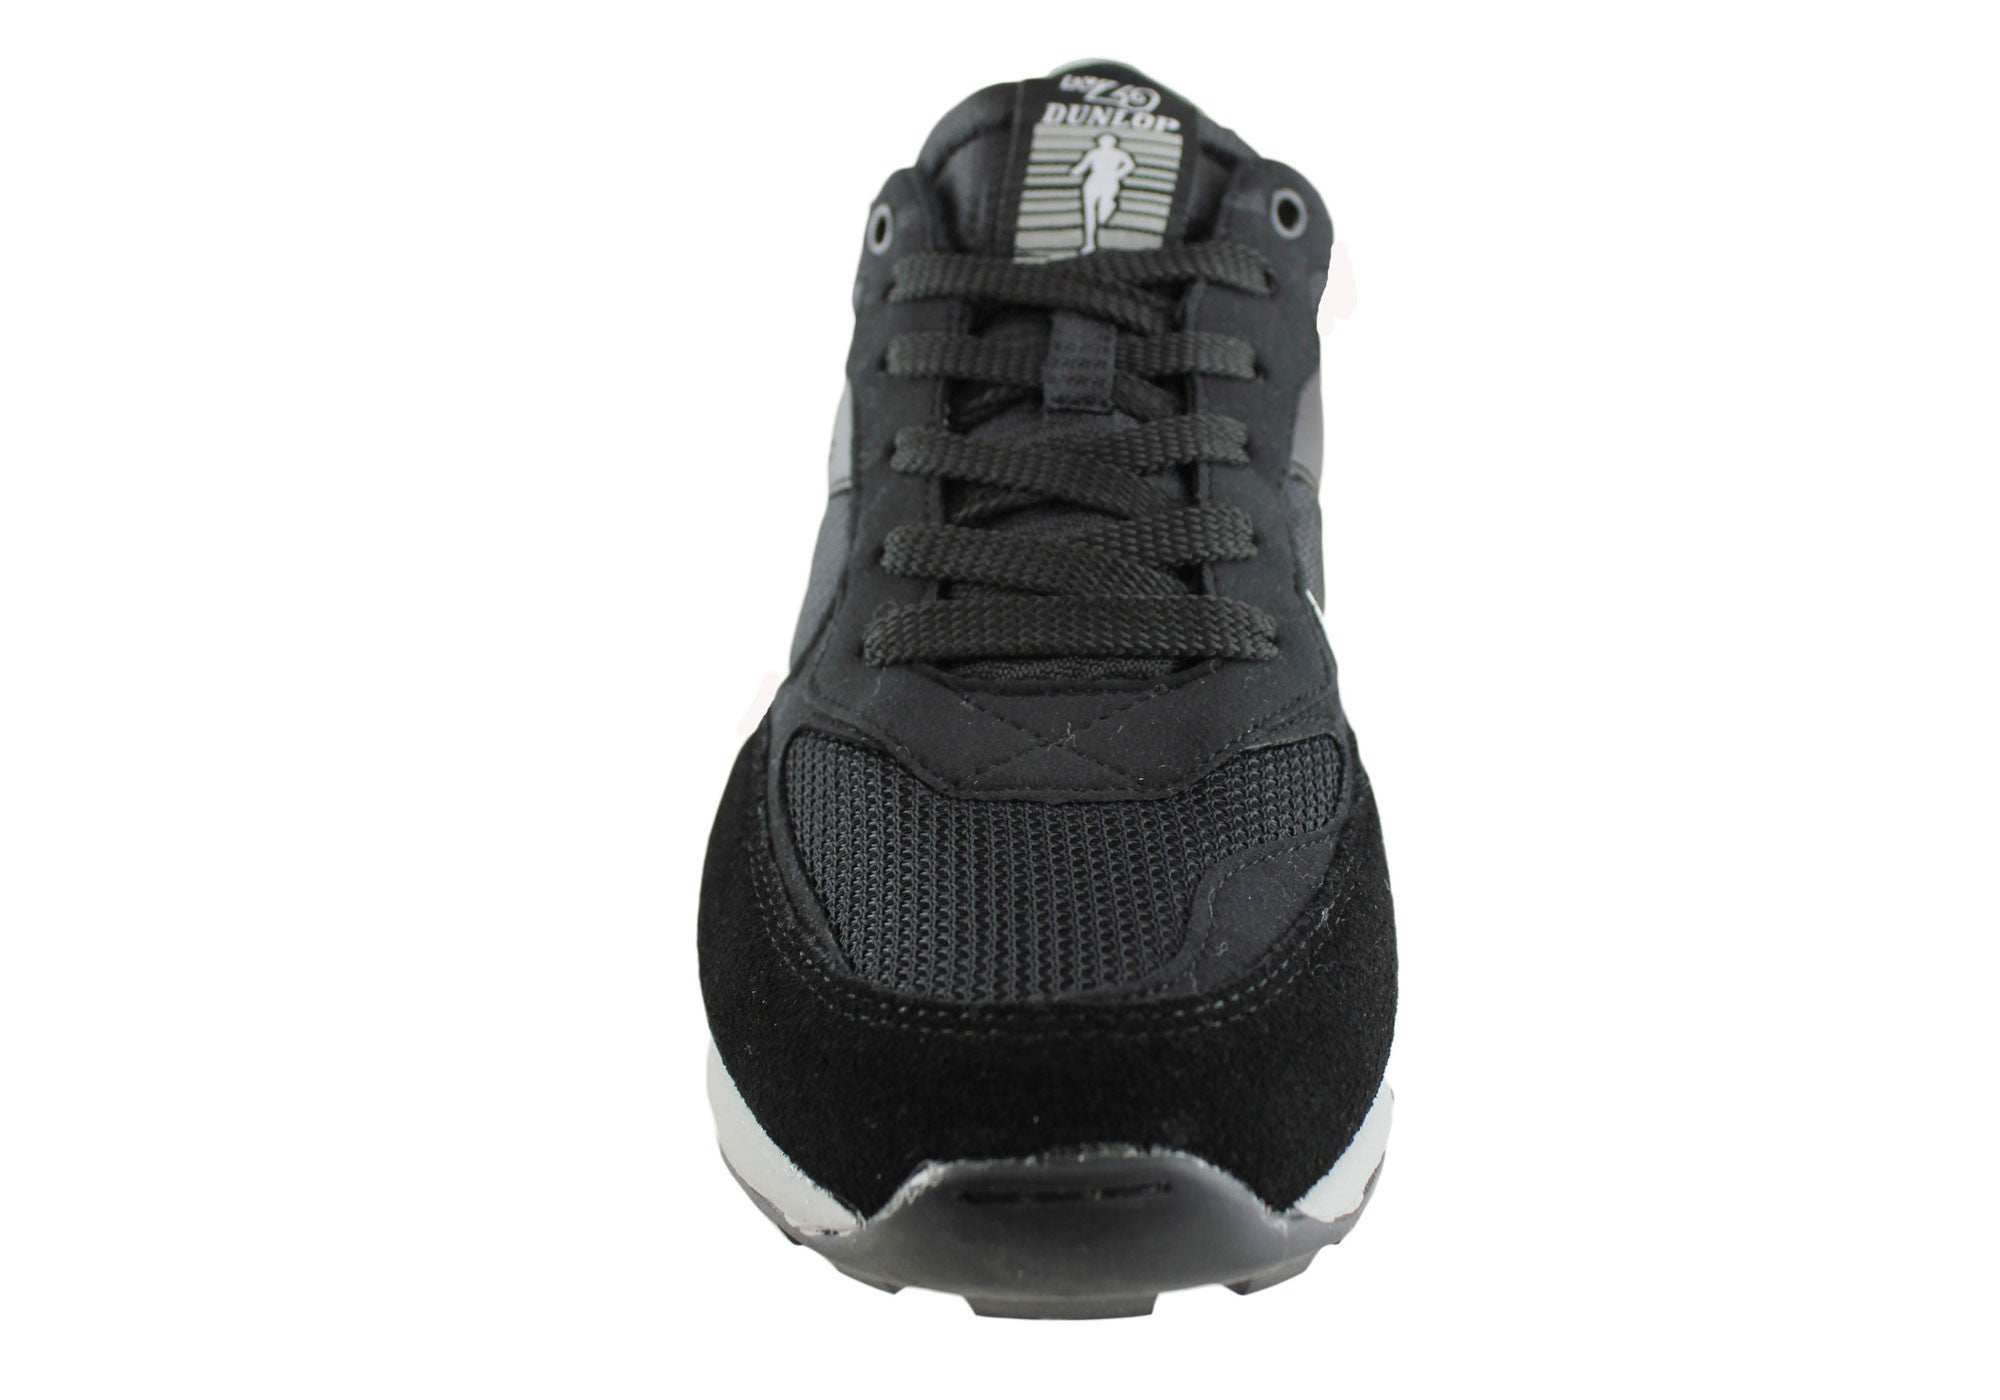 Dunlop KT-26 Mens Comfortable Sports Lace Up Shoes